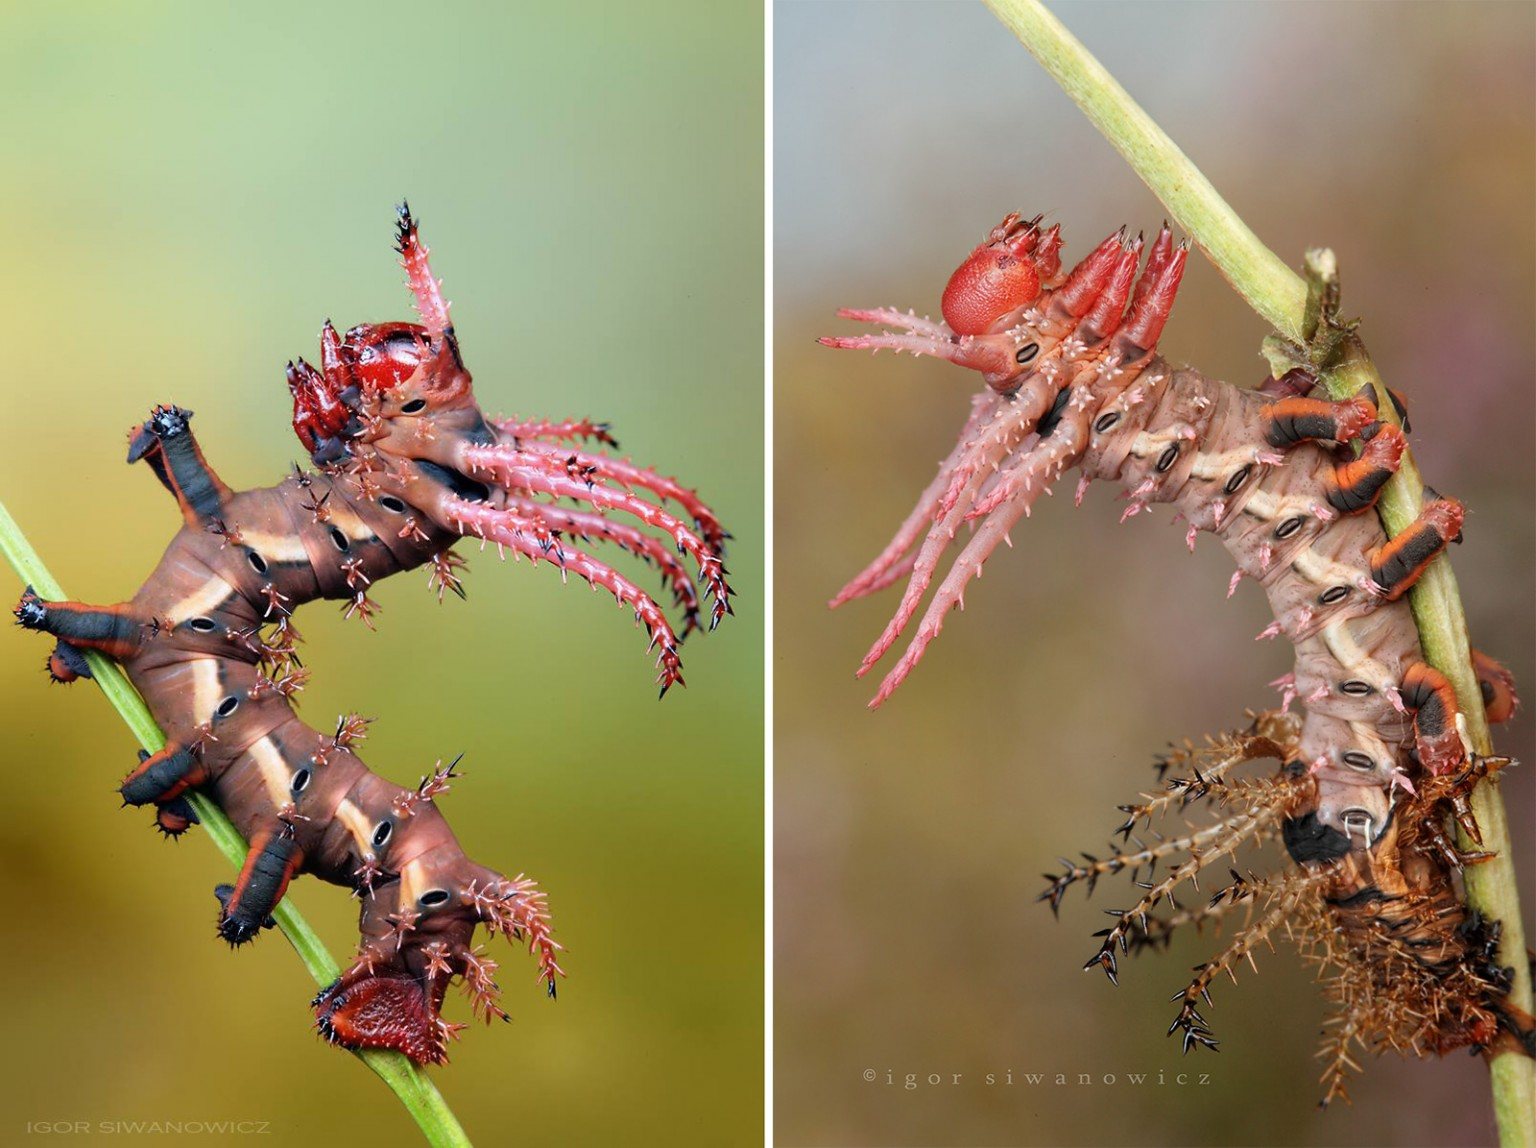 Radically Unusual Caterpillars Captured by Photographer Igor Siwanowicz 1 Radically Unusual Caterpillars Captured by Photographer Igor Siwanowicz